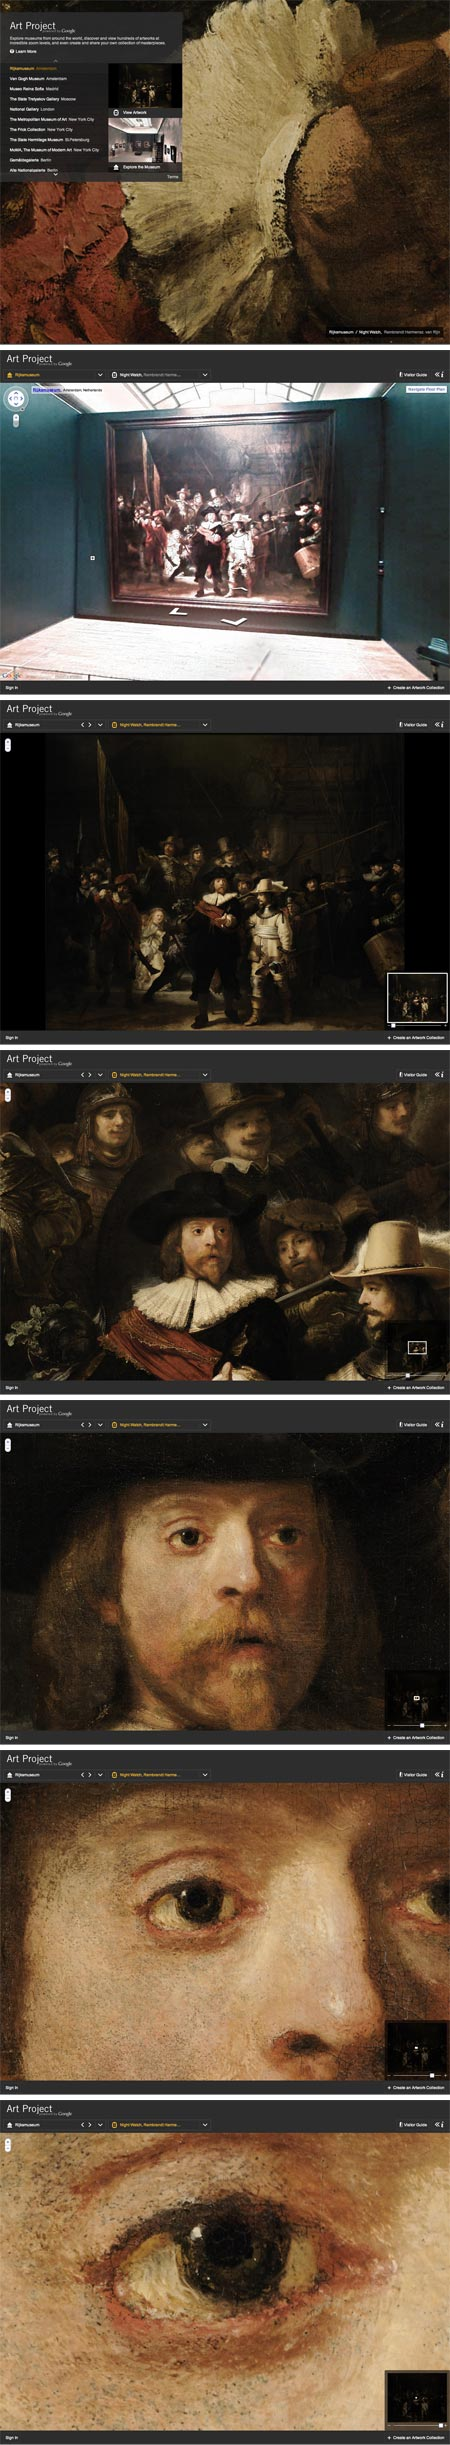 Google Art Project, Rembrandt, The Night Watch